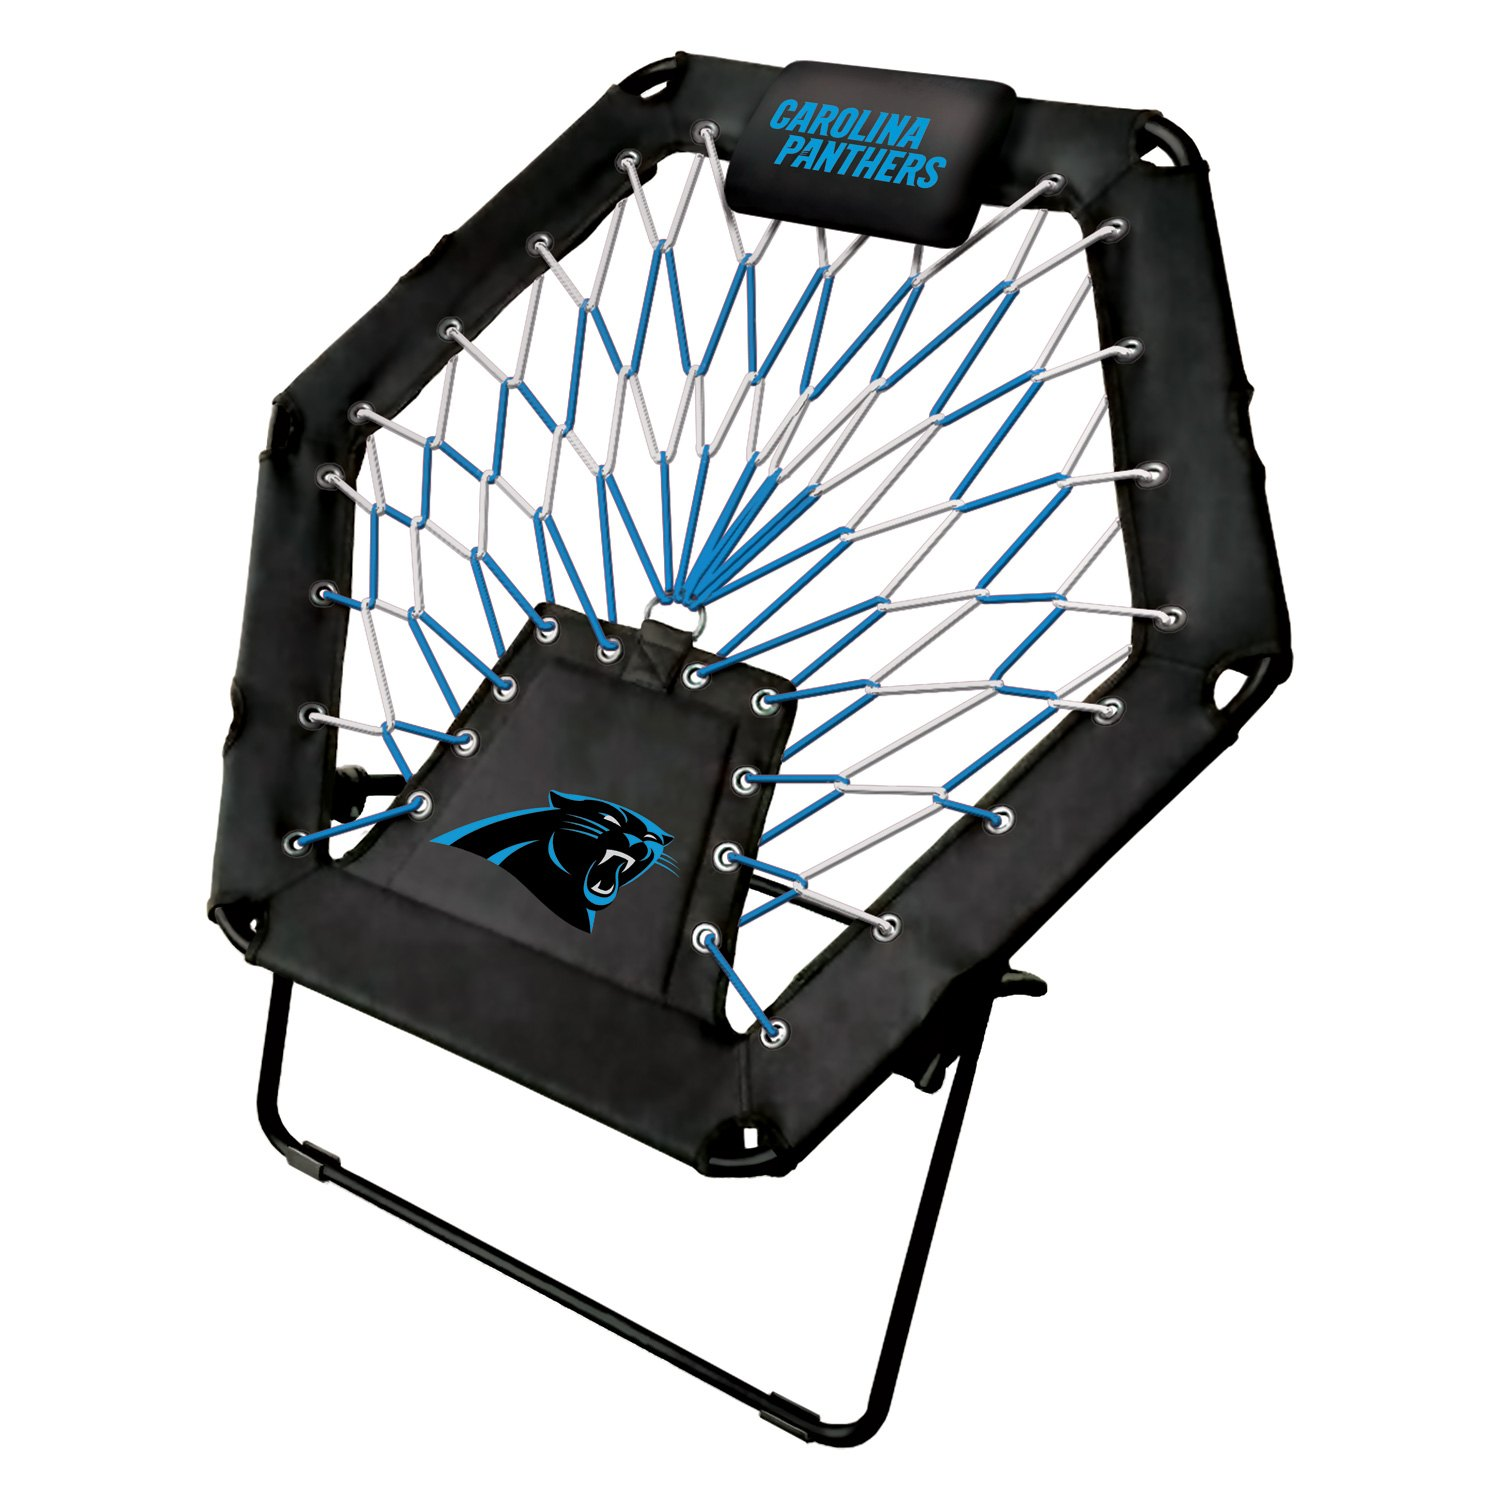 carolina panthers chair outdoor rocking pad imperial international imp 178 1017 nfl